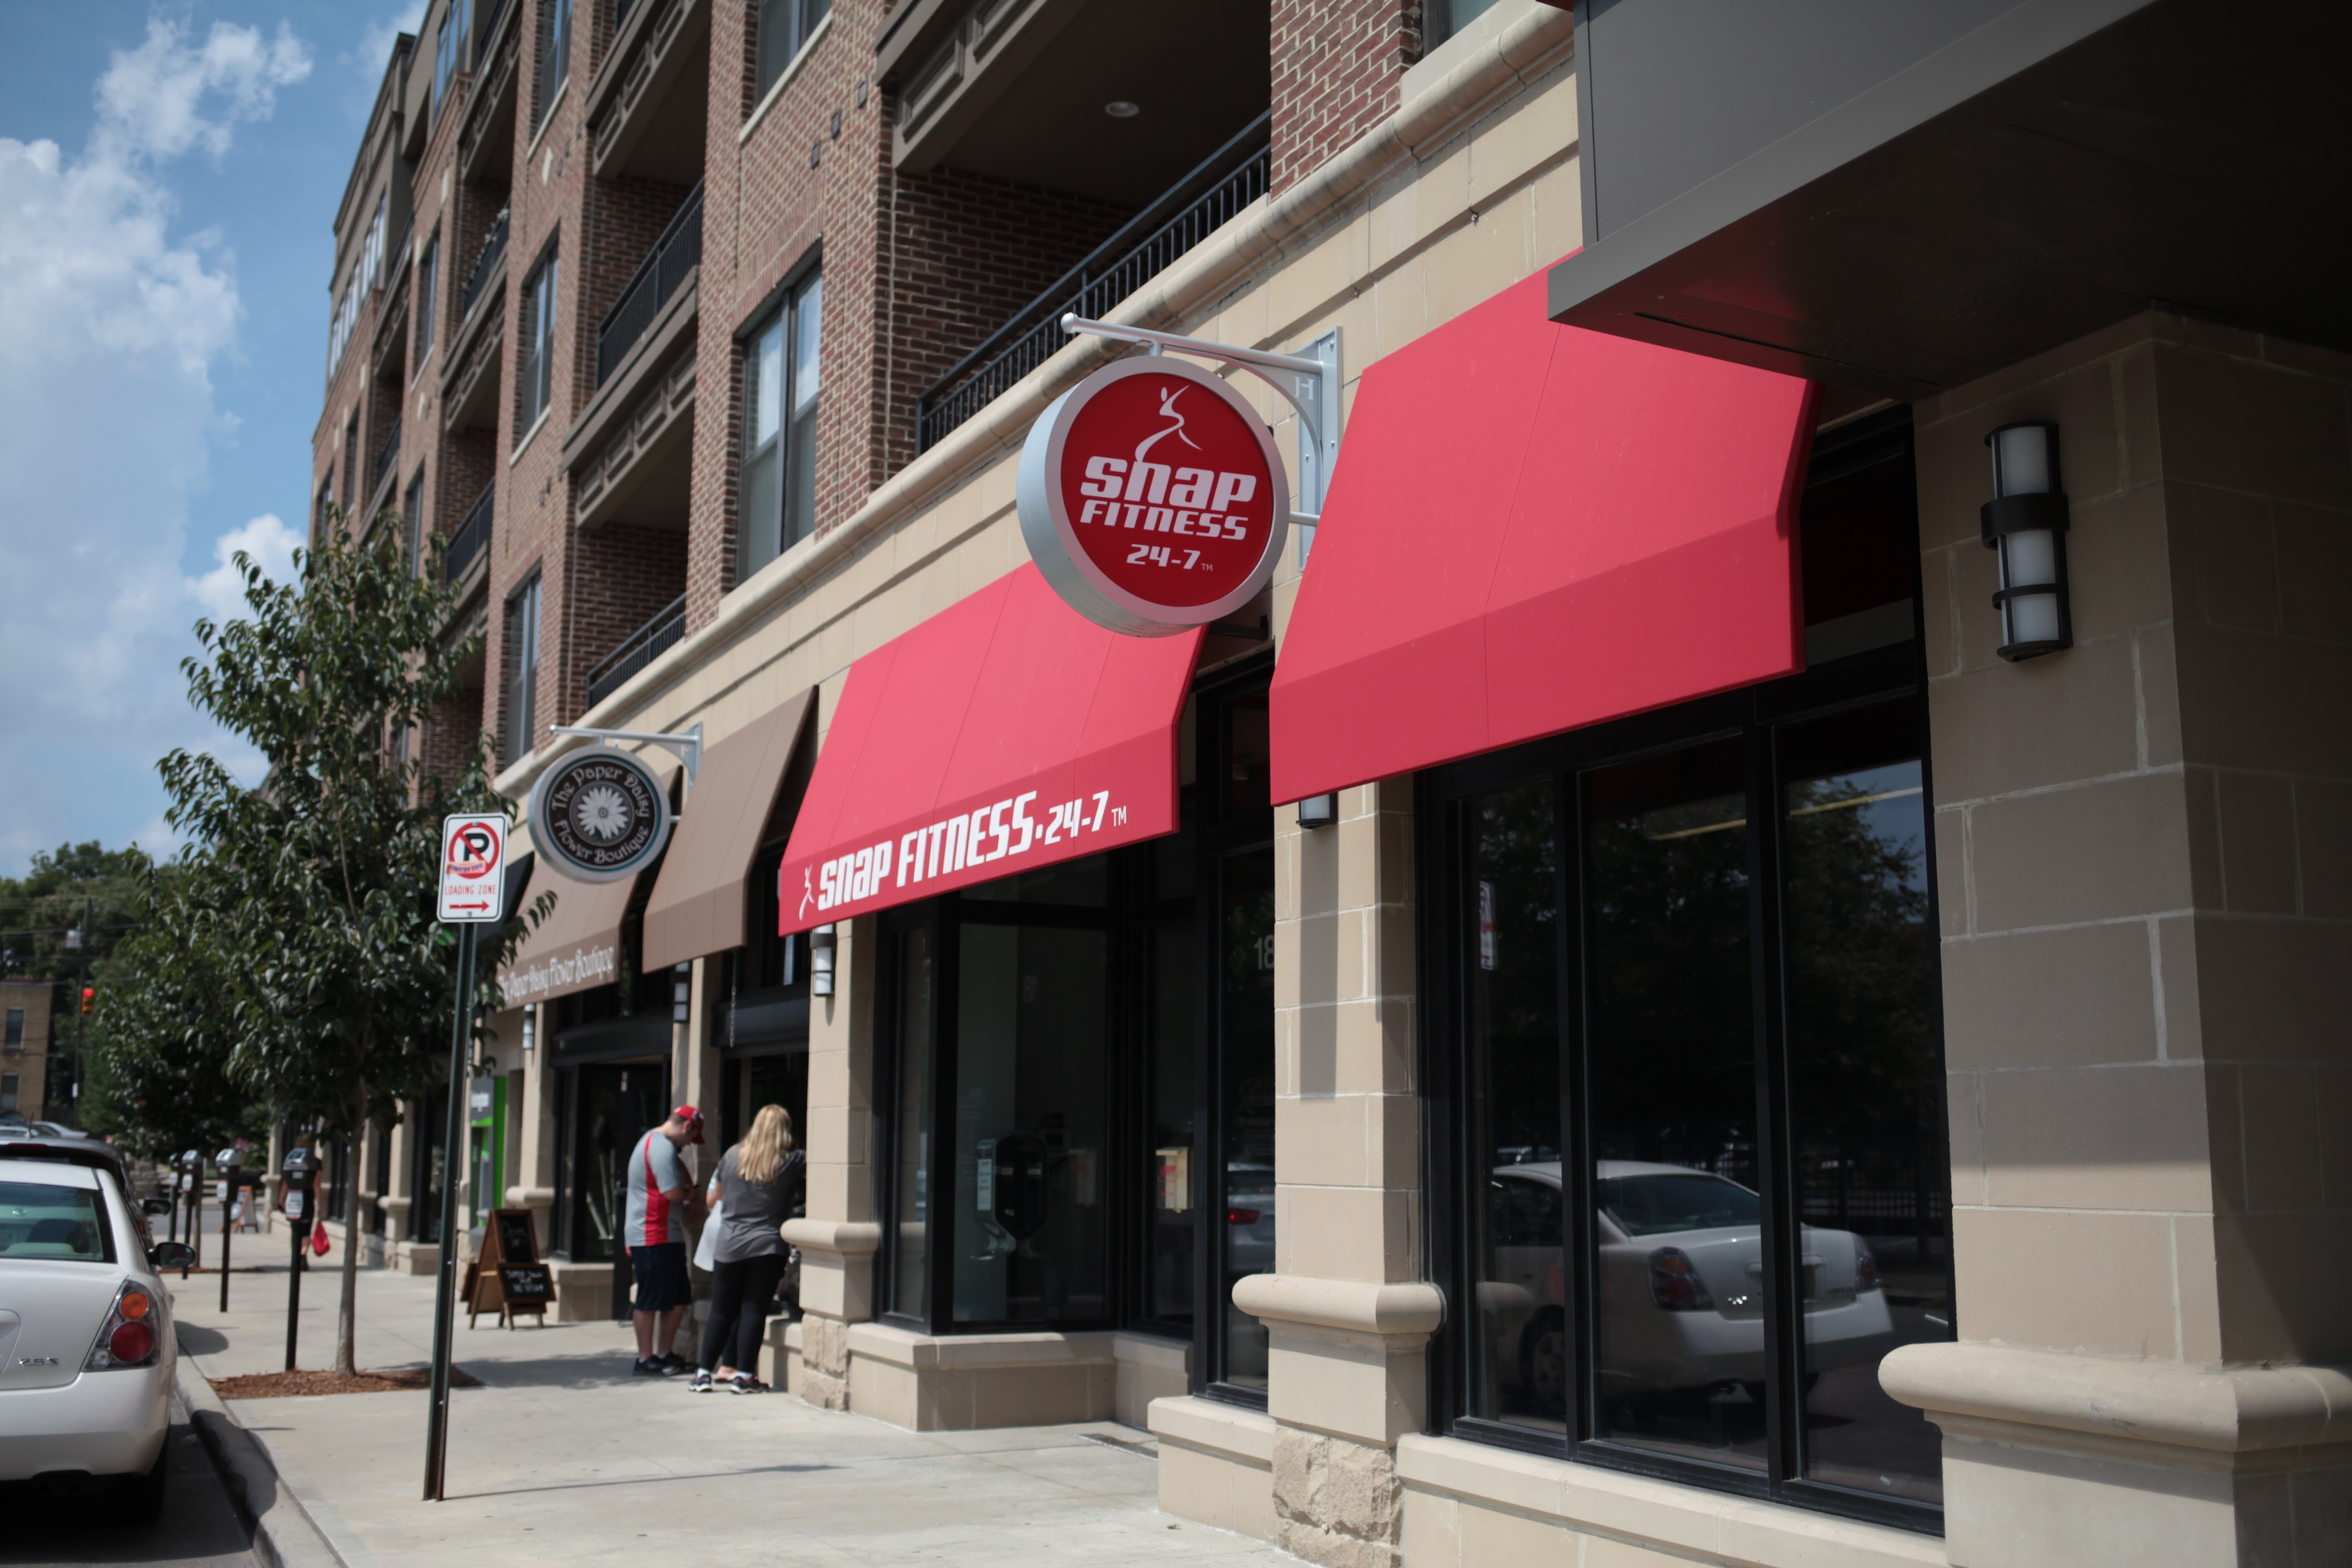 Lykens Companies has partnered with Snap Fitness to offer its tenants a new way to experience an affordable healthy lifestyle. Snap Fitness Short North's location is just off High Street and perfect for local residents or workers on a lunch break. Located in Columbus, Ohio, Lykens Companies serves Columbus, Ohio's urban core with an eye toward historical preservation and restoration. We are deeply involved in the Short North, Victorian Village, Italian Village, Olde Towne East, and Weiland Park communities.